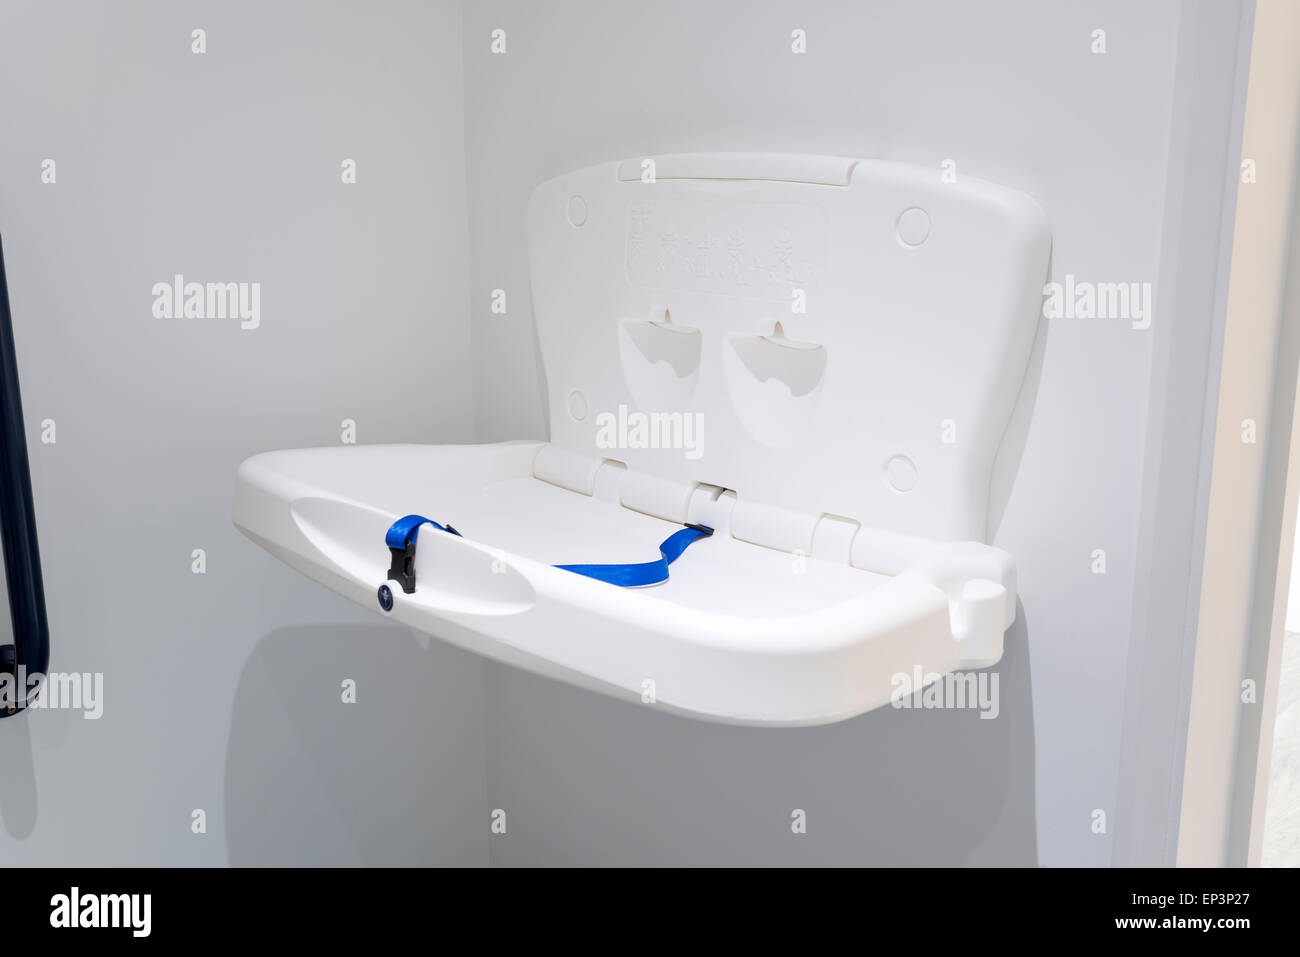 Bathroom Changing Table baby changing table in a toilet stock photo, royalty free image